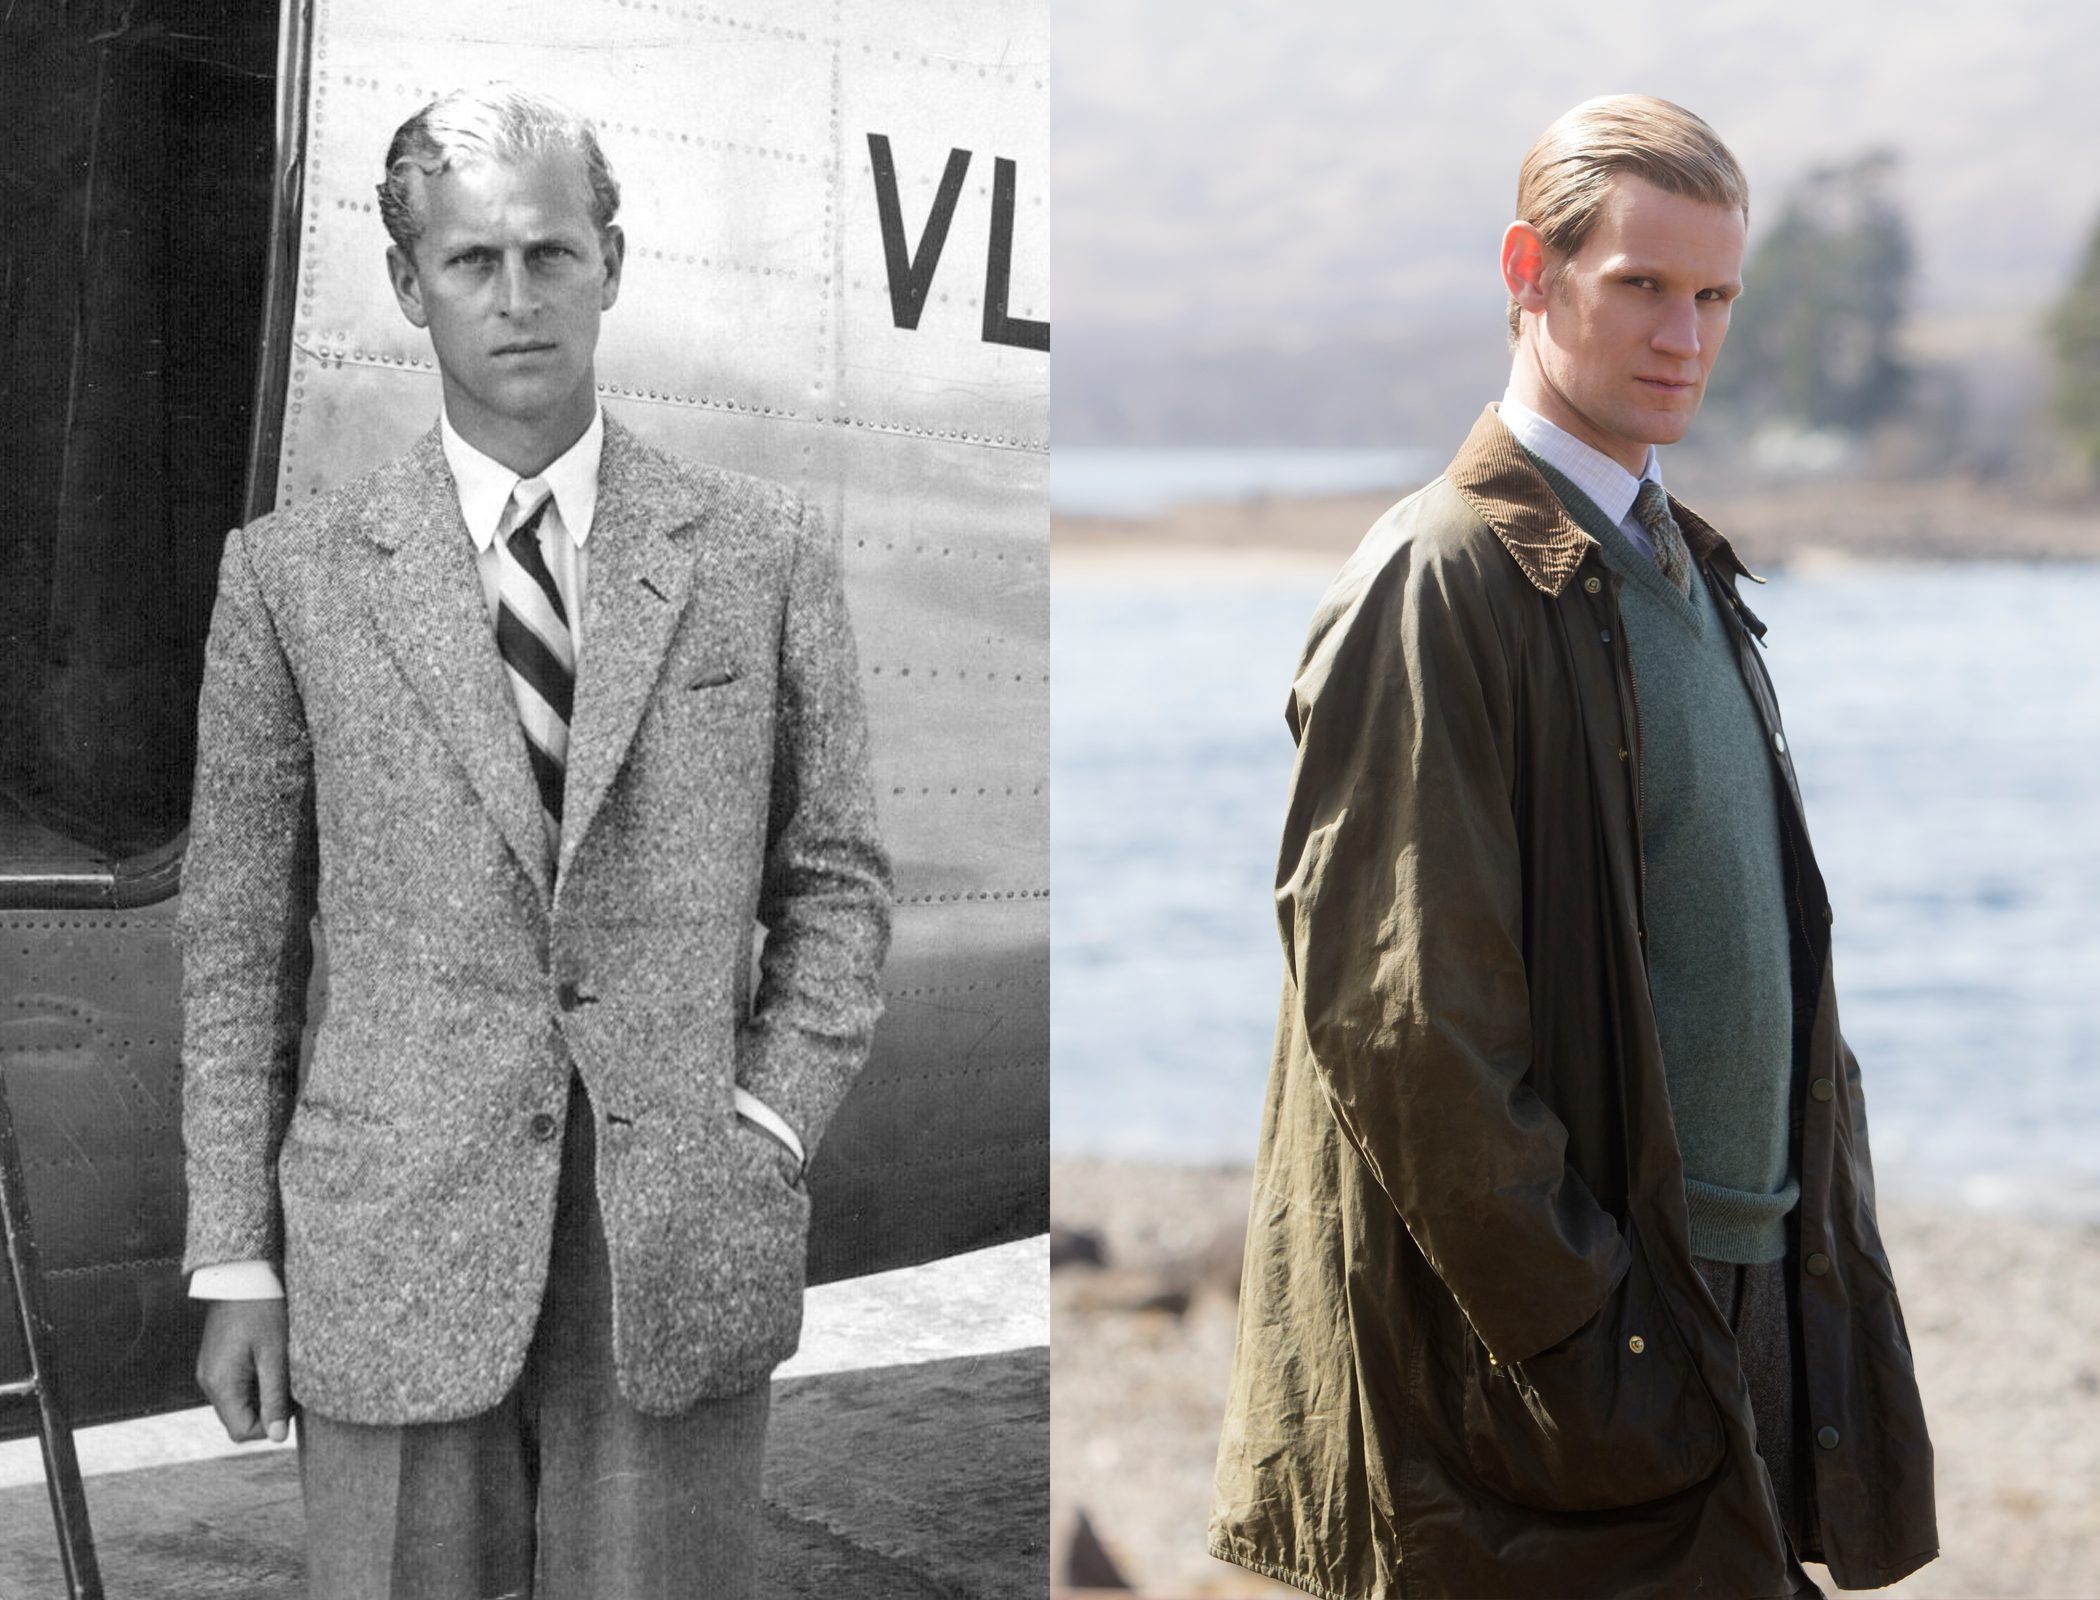 Prince Philip played by Matt Smith